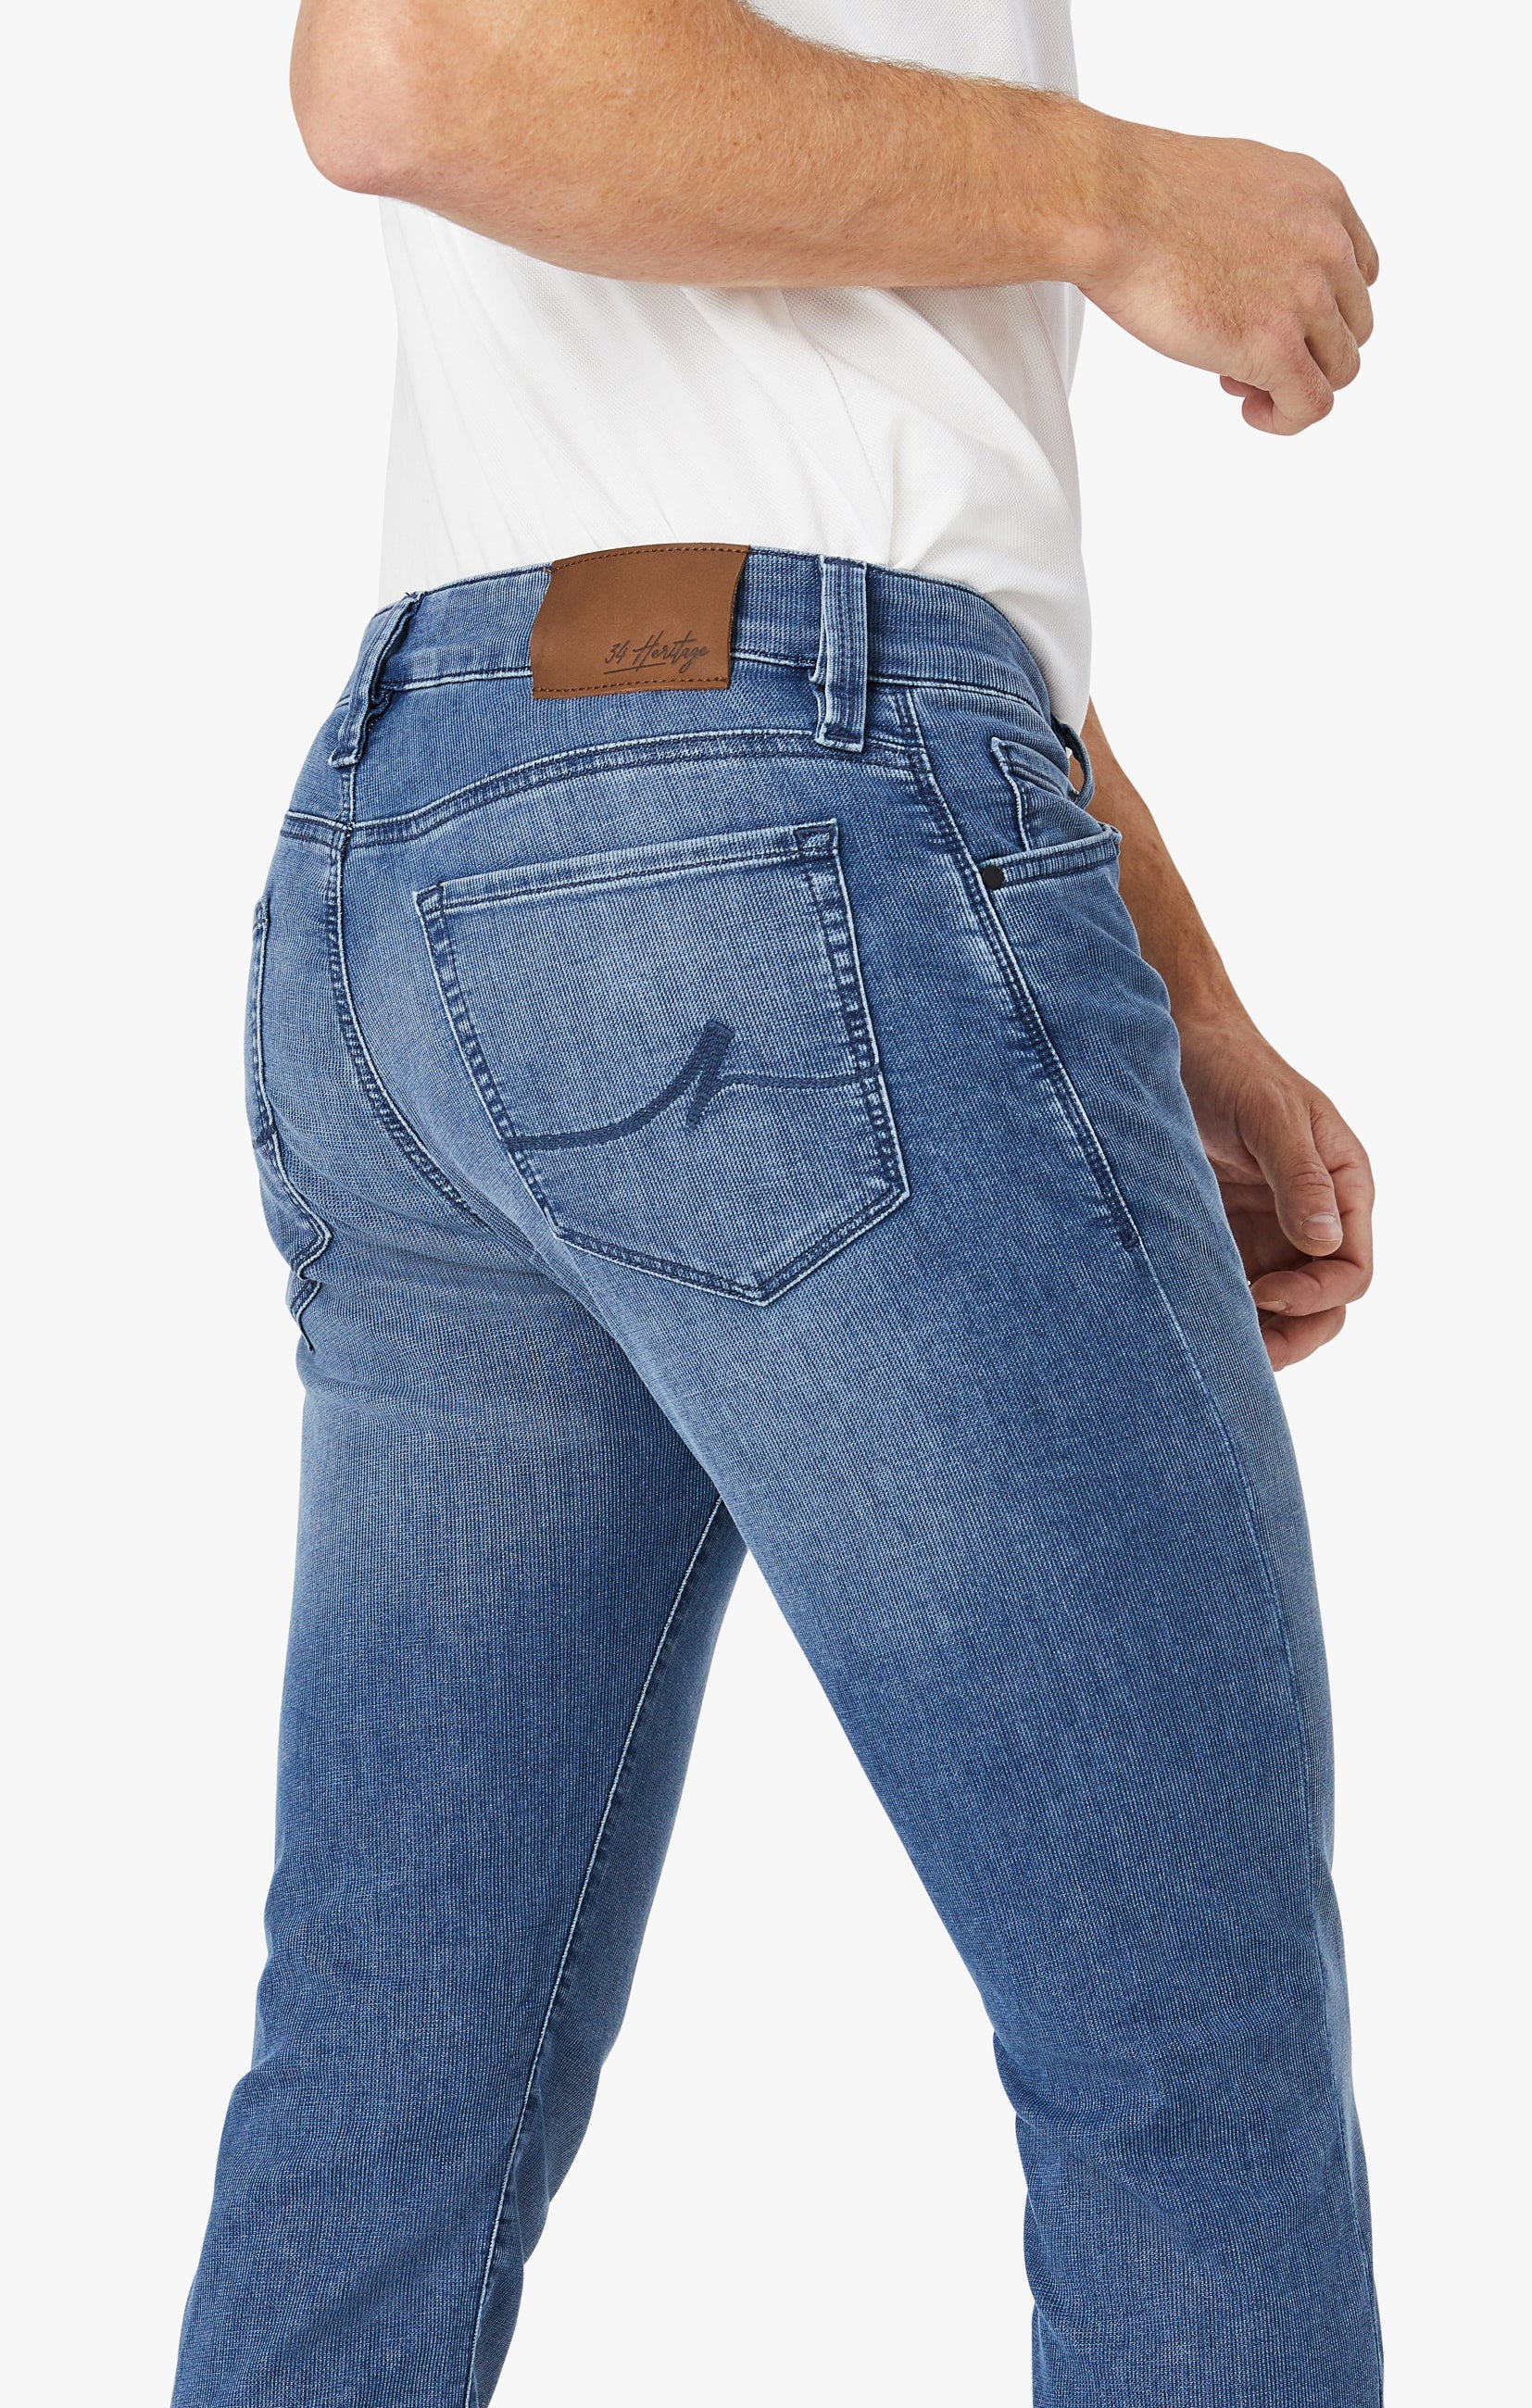 Courage Straight Leg Jeans In Light Indigo Sporty Image 6